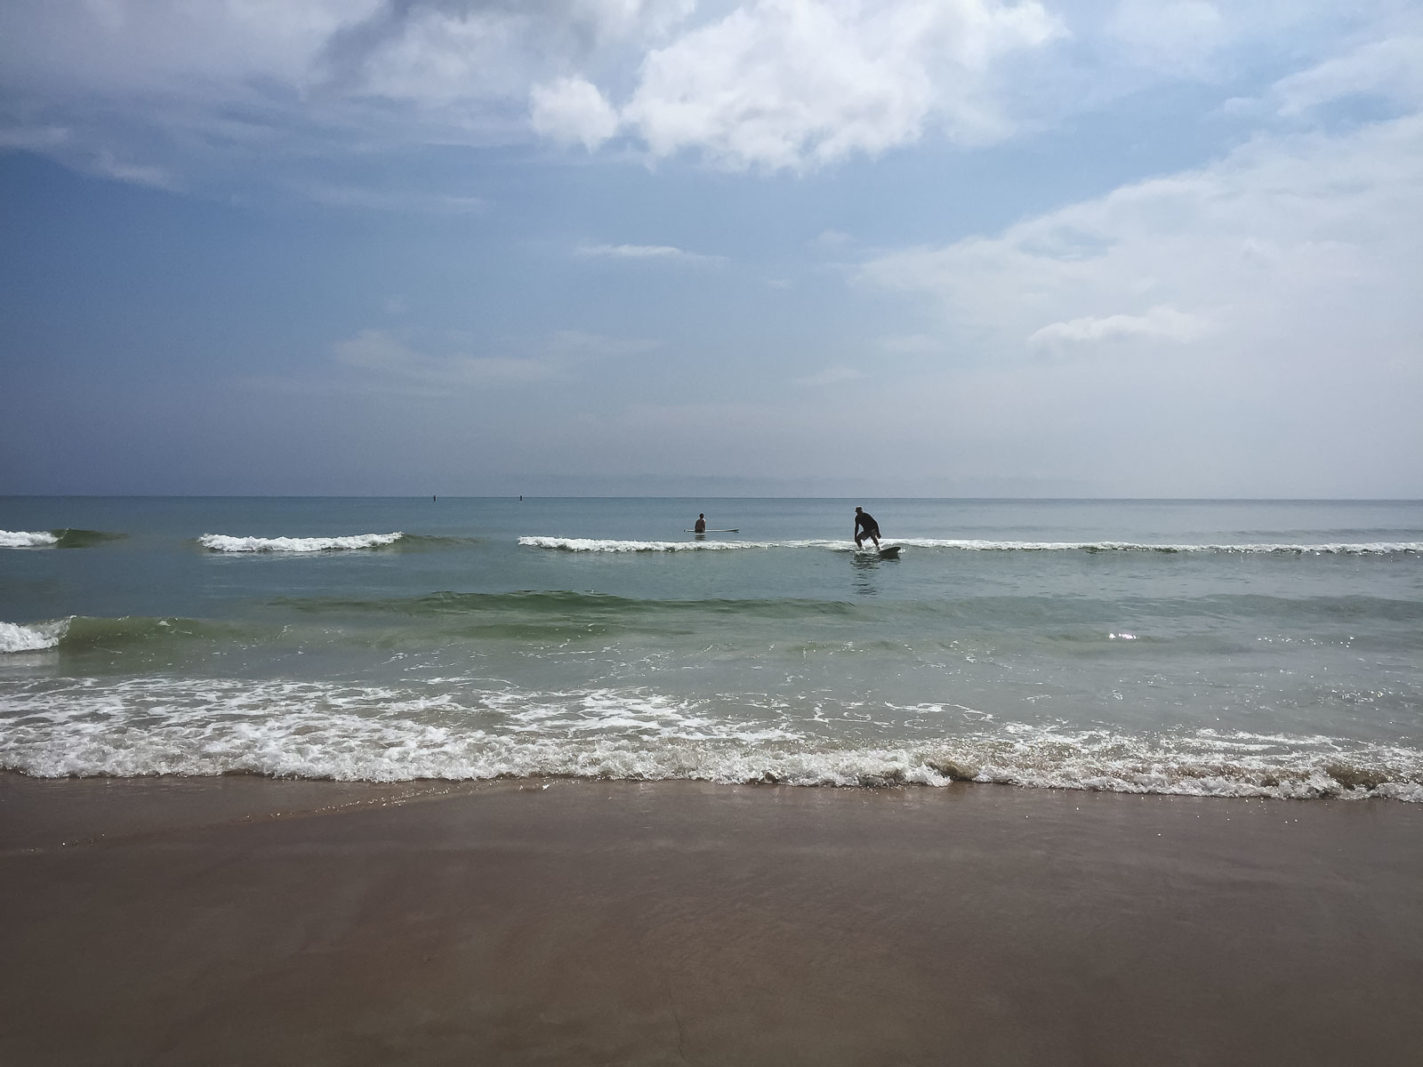 surfing the waves at Daytona Beach